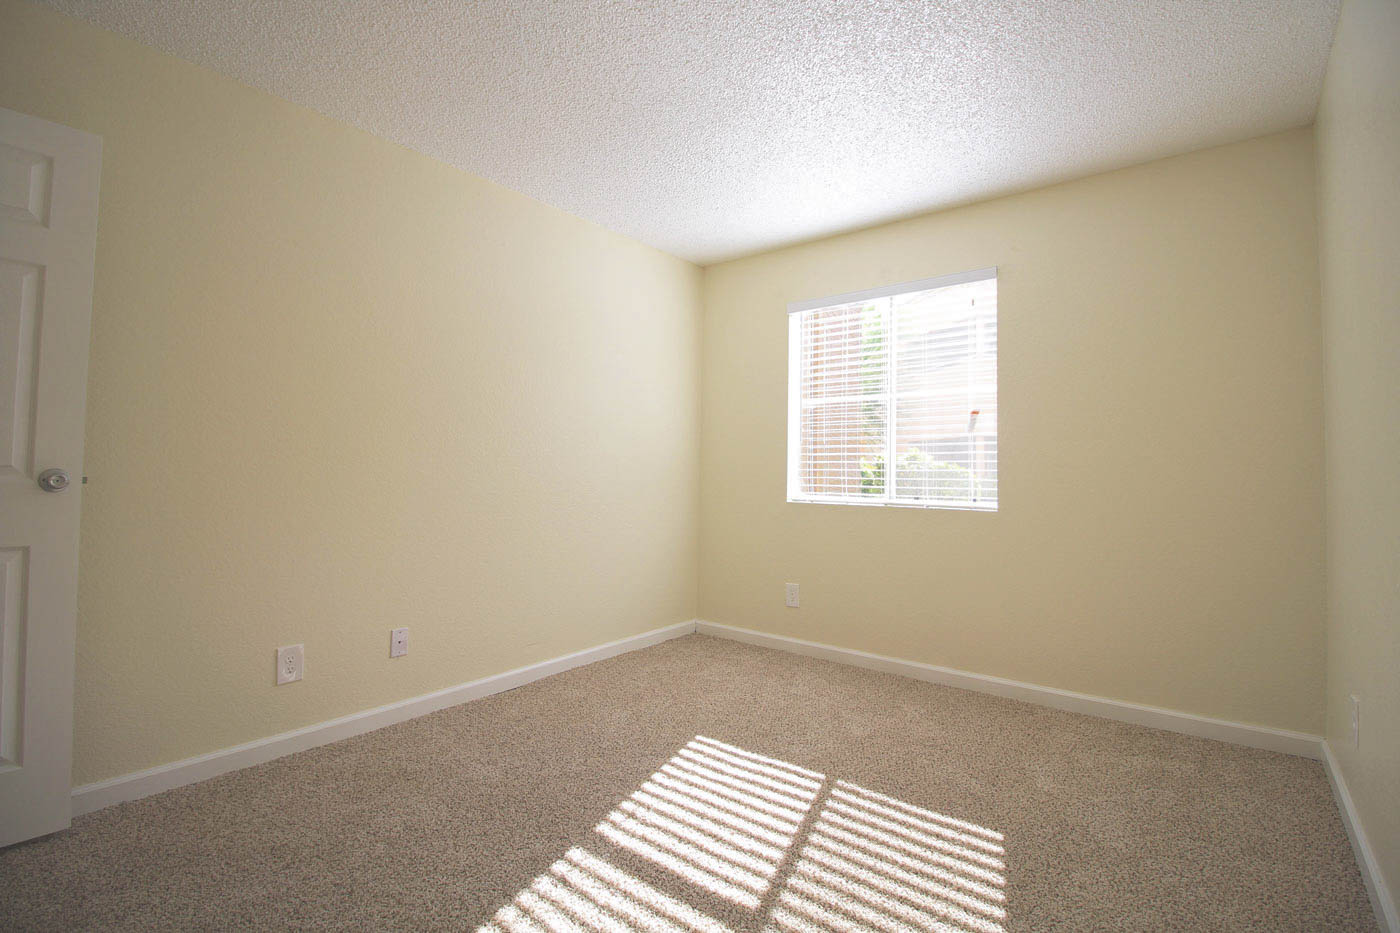 Bedroom at Silver Stream Apartments.